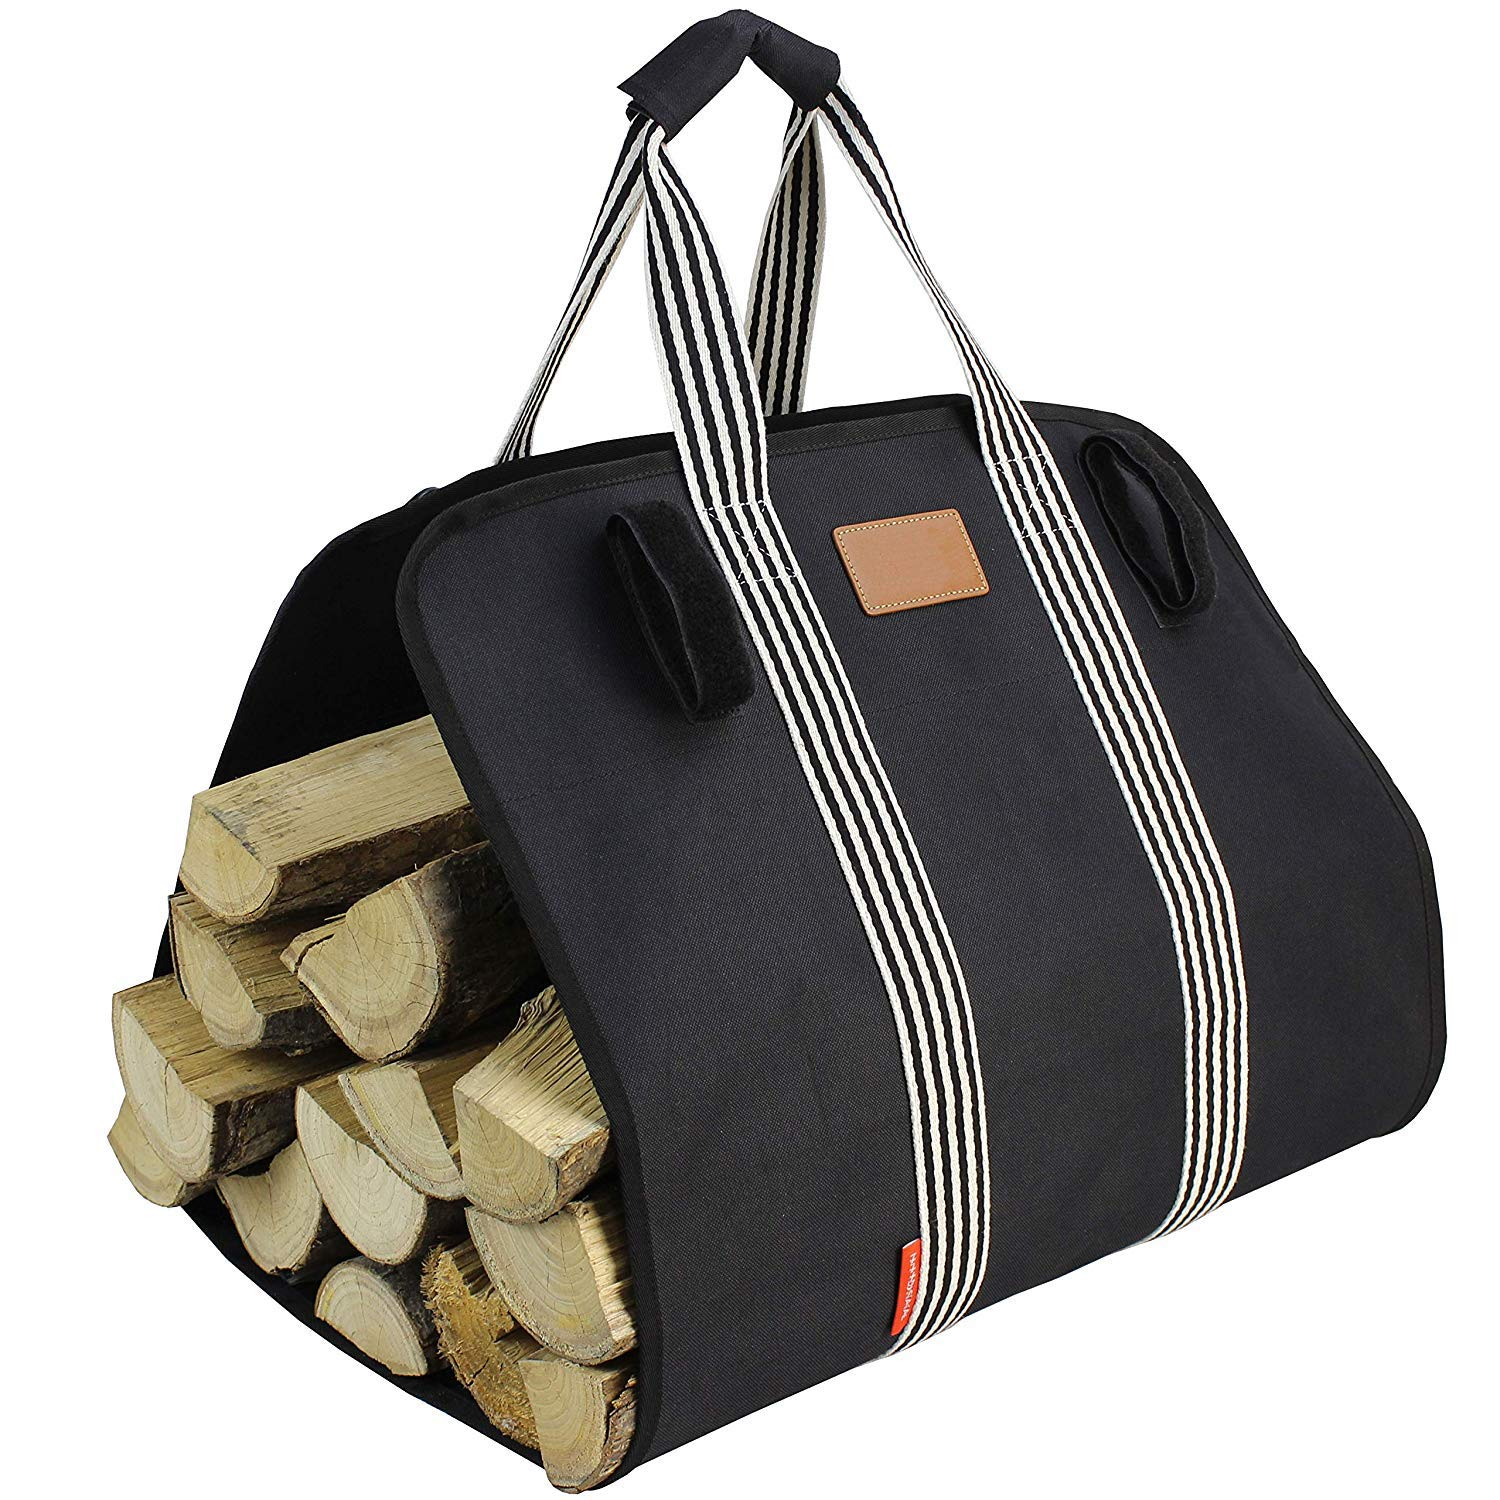 Heavy Firewood Log Carrier Tote, 16oz Canvas Foldable Wood Carrier Padded Handles, Large Capacity Firewood Carrier Bag with Hook and Loop by MyFirePlaceDirect